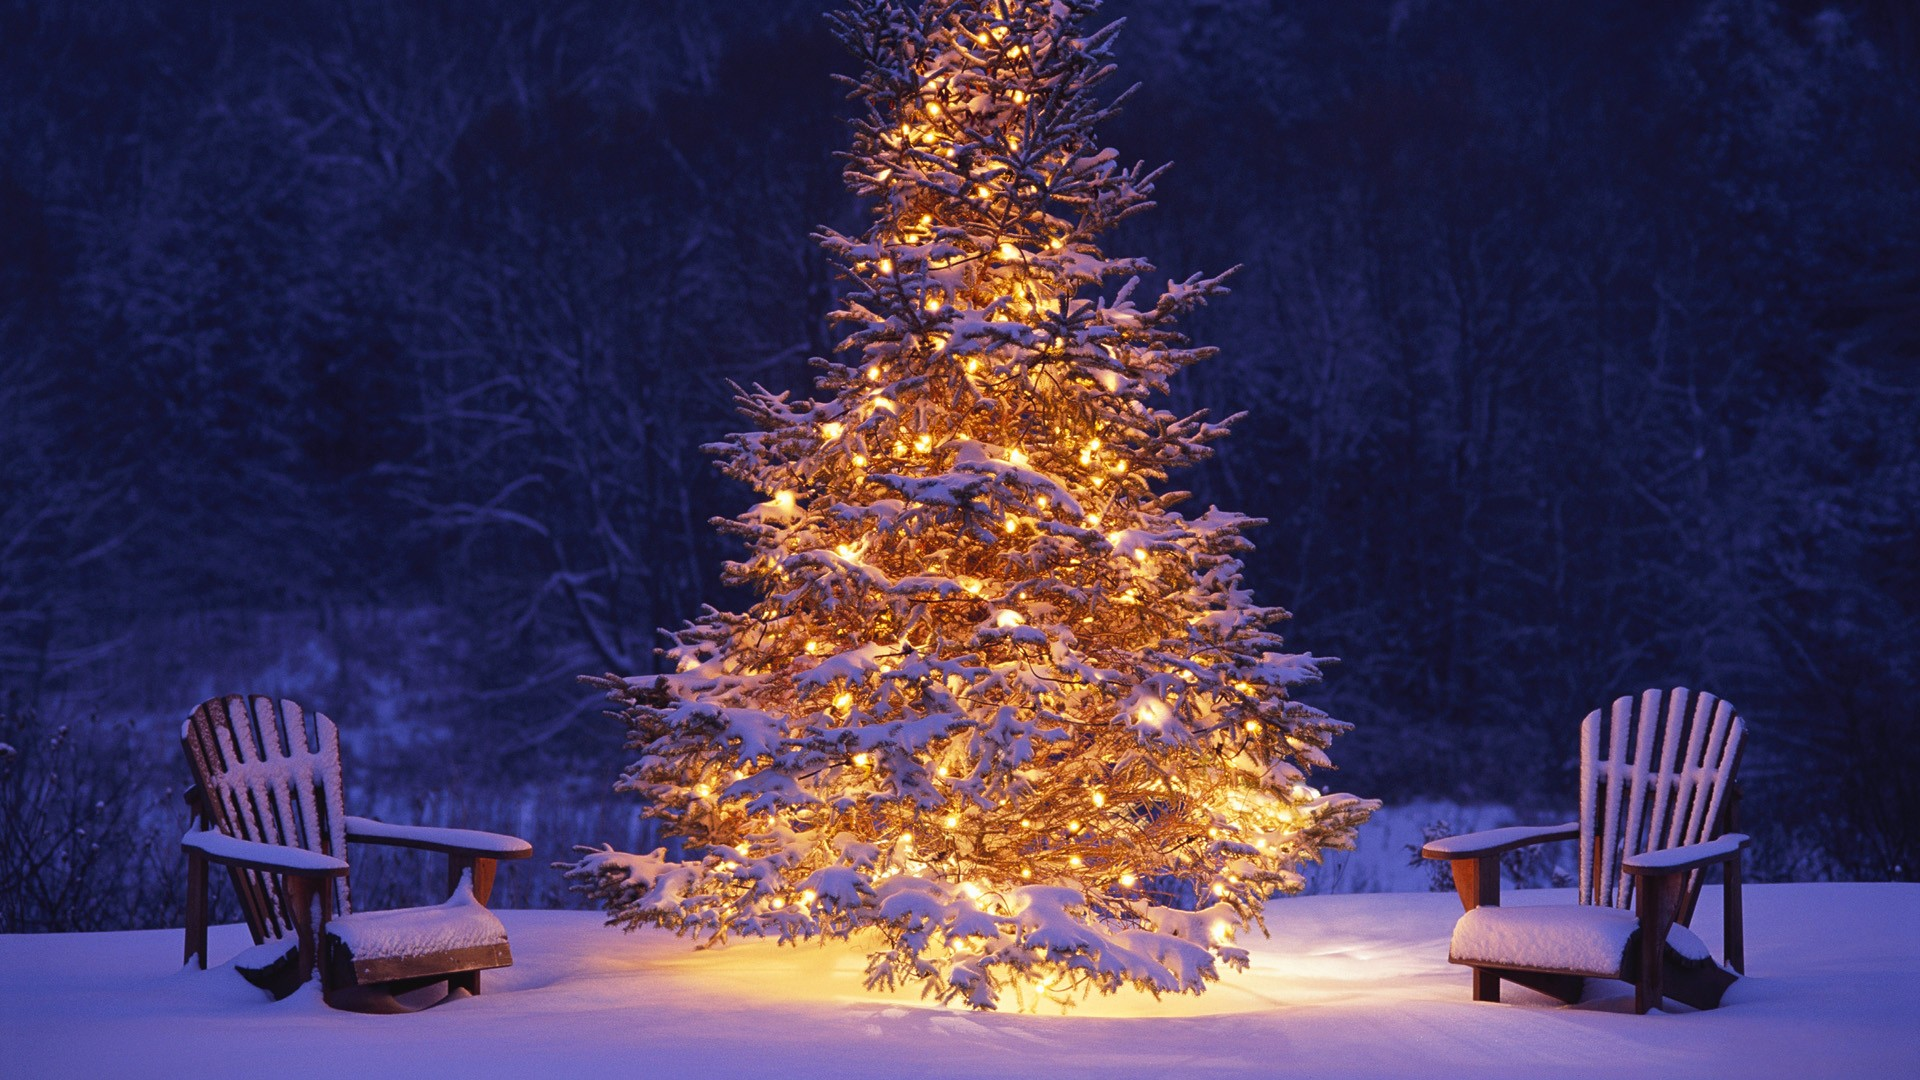 Hd Christmas Wallpaper.Merry Christmas Hd Wallpapers Image Greetings Free